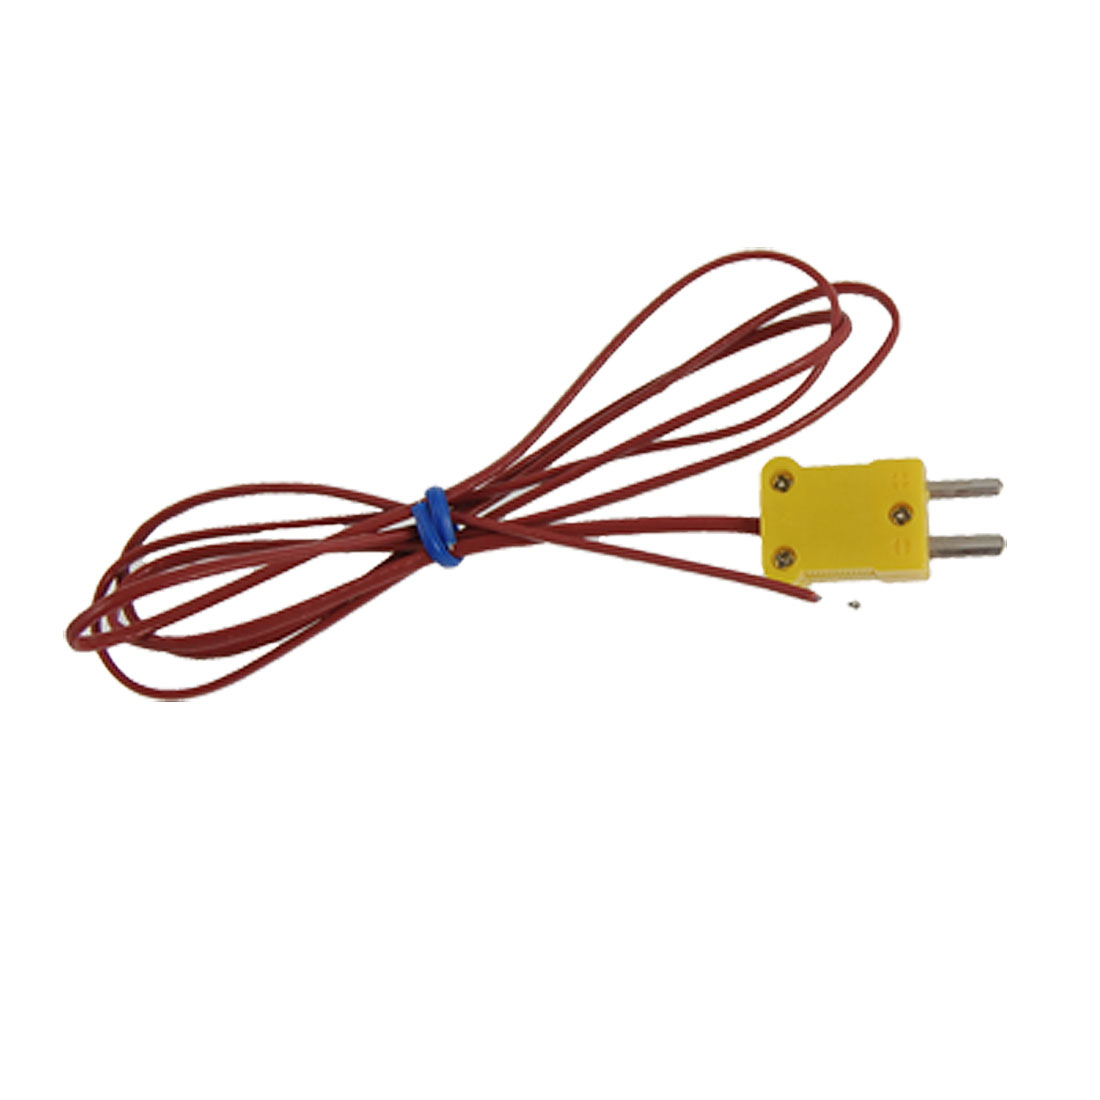 1M Type K Thermocouple Wire Lead 0-250C for Digital Thermometer